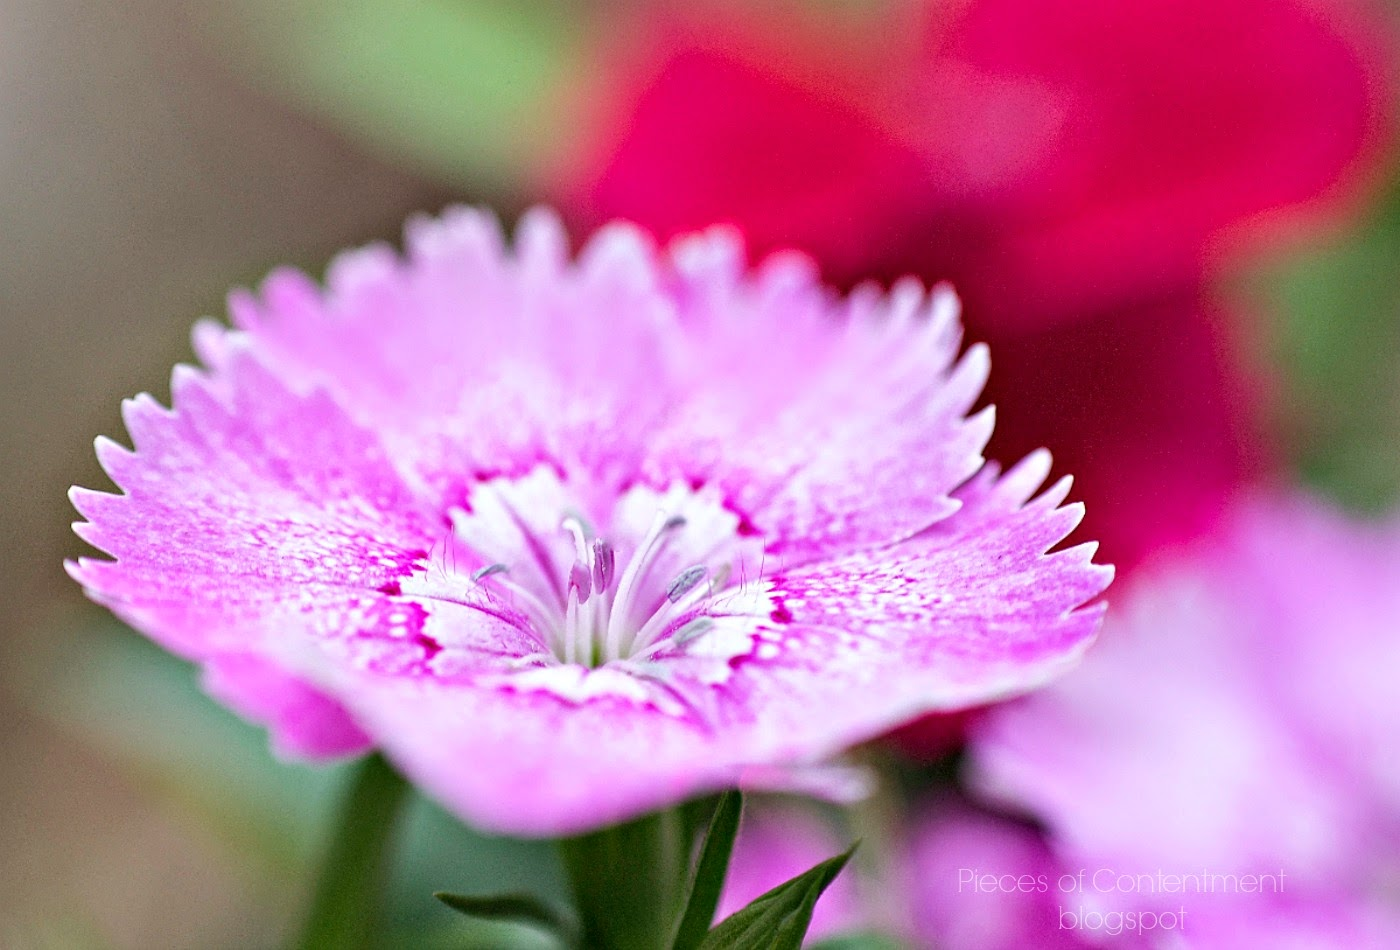 Dianthus flower on seedling